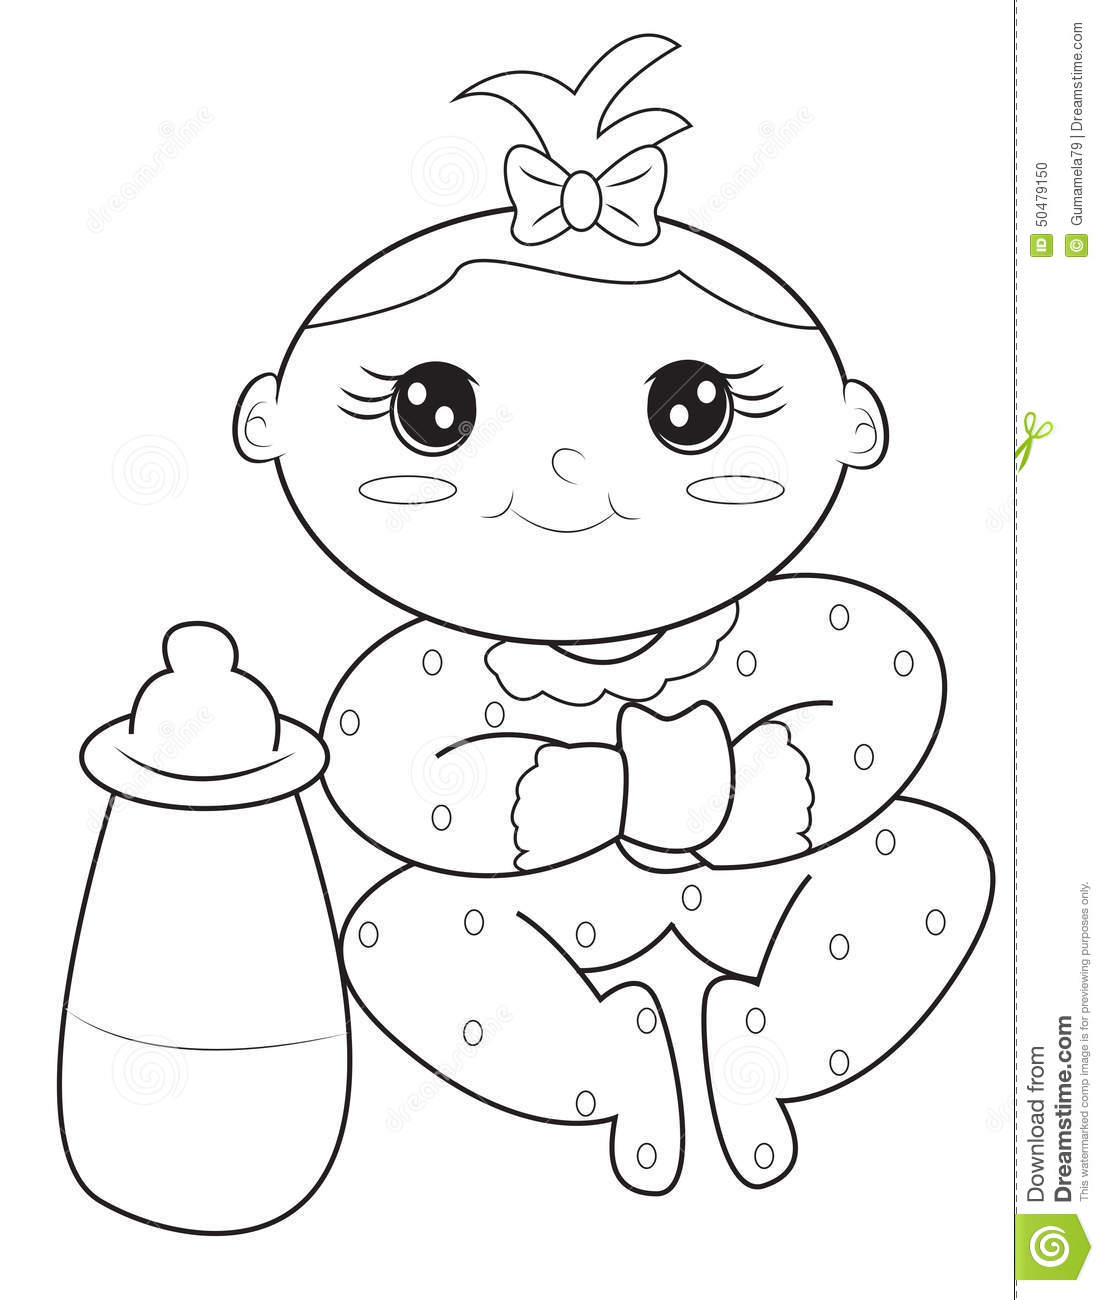 baby girl coloring page stock illustration image 50479150